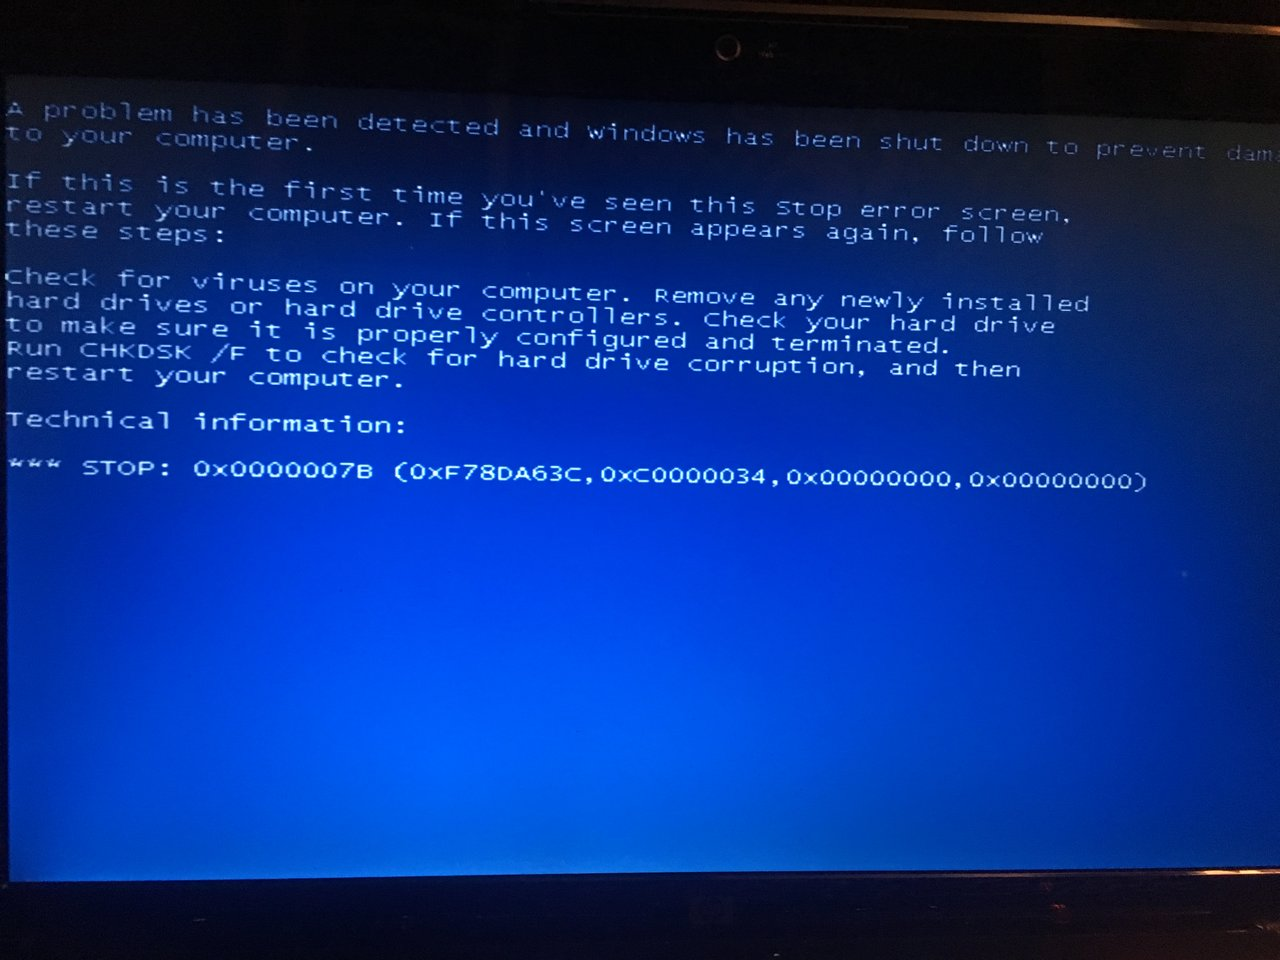 I need to install Windows XP on a laptop with Win7 Error 7b Help